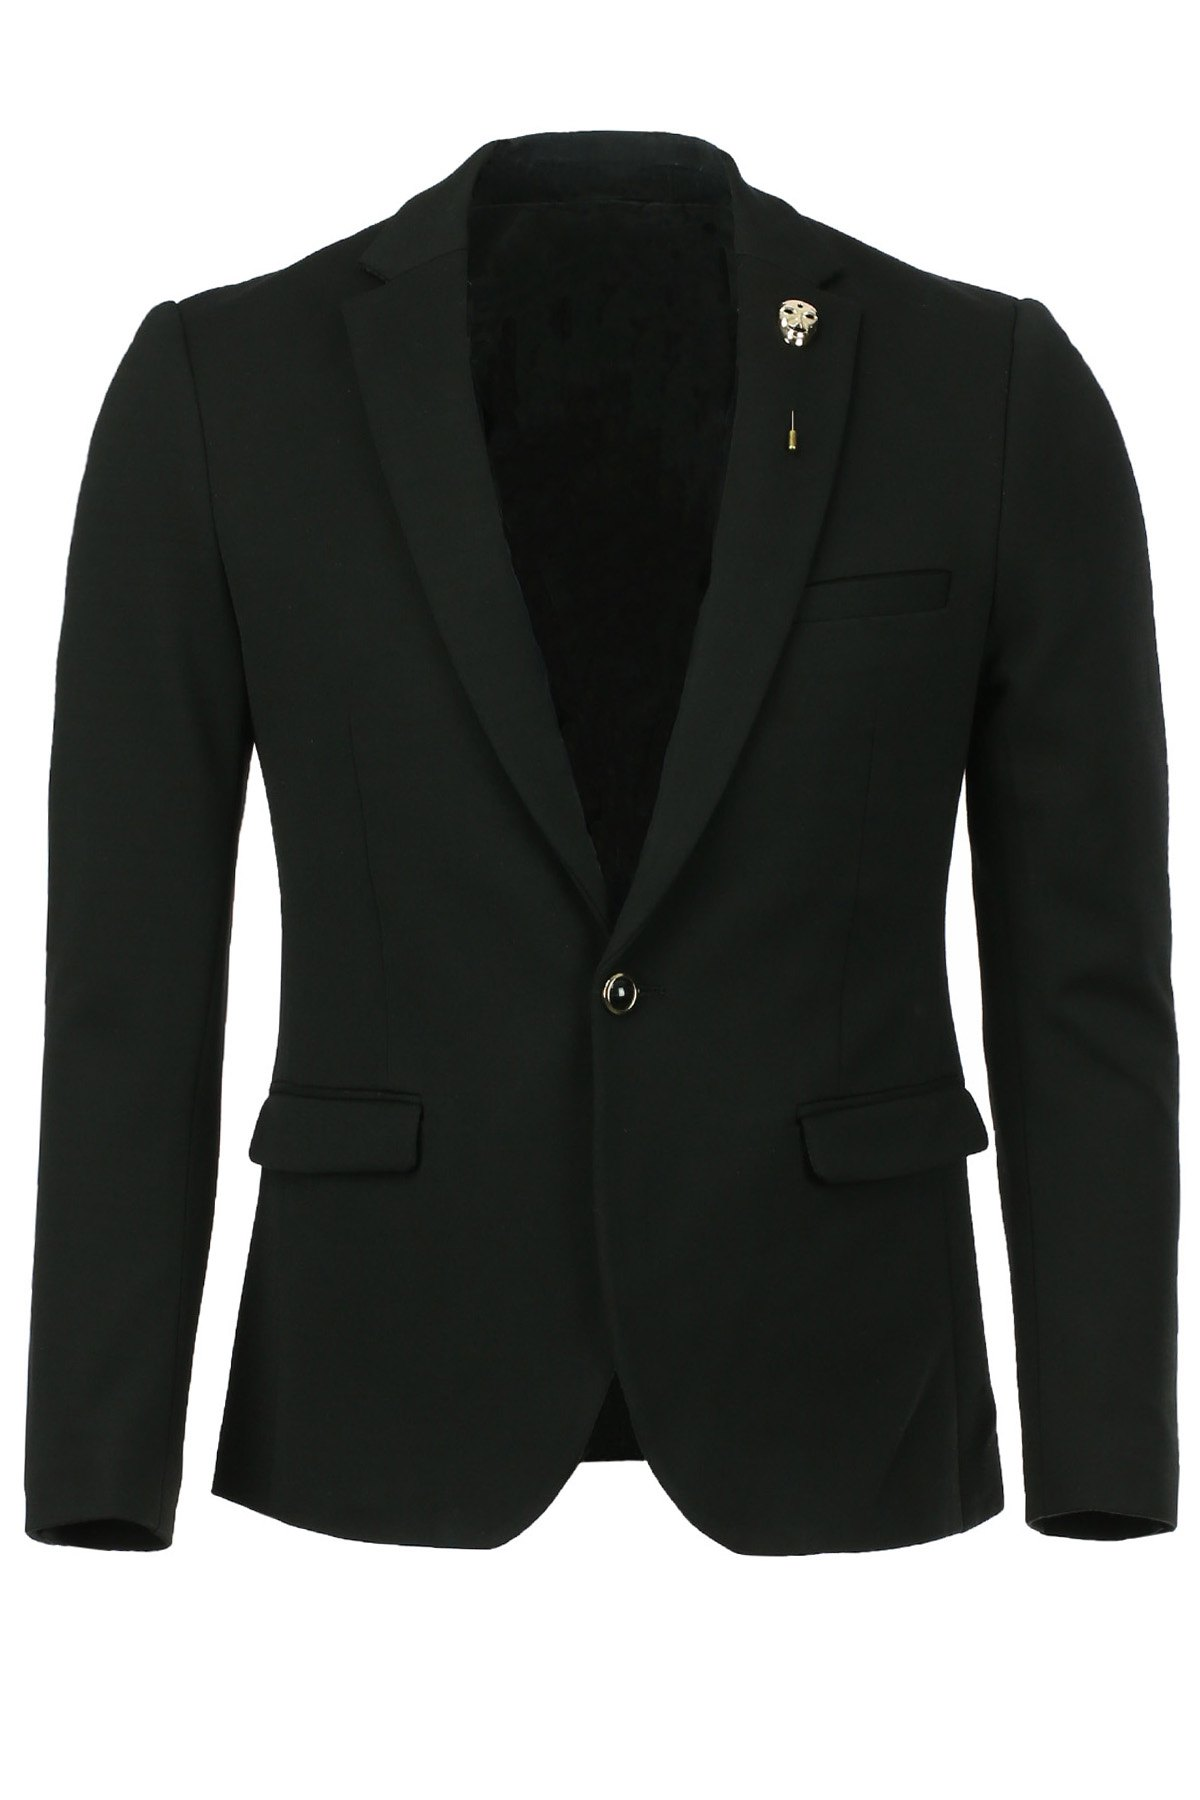 Laconic Stereo Patch Pocket Slimming Lapel Long Sleeves Men's Single-Breasted Blazer - BLACK 2XL